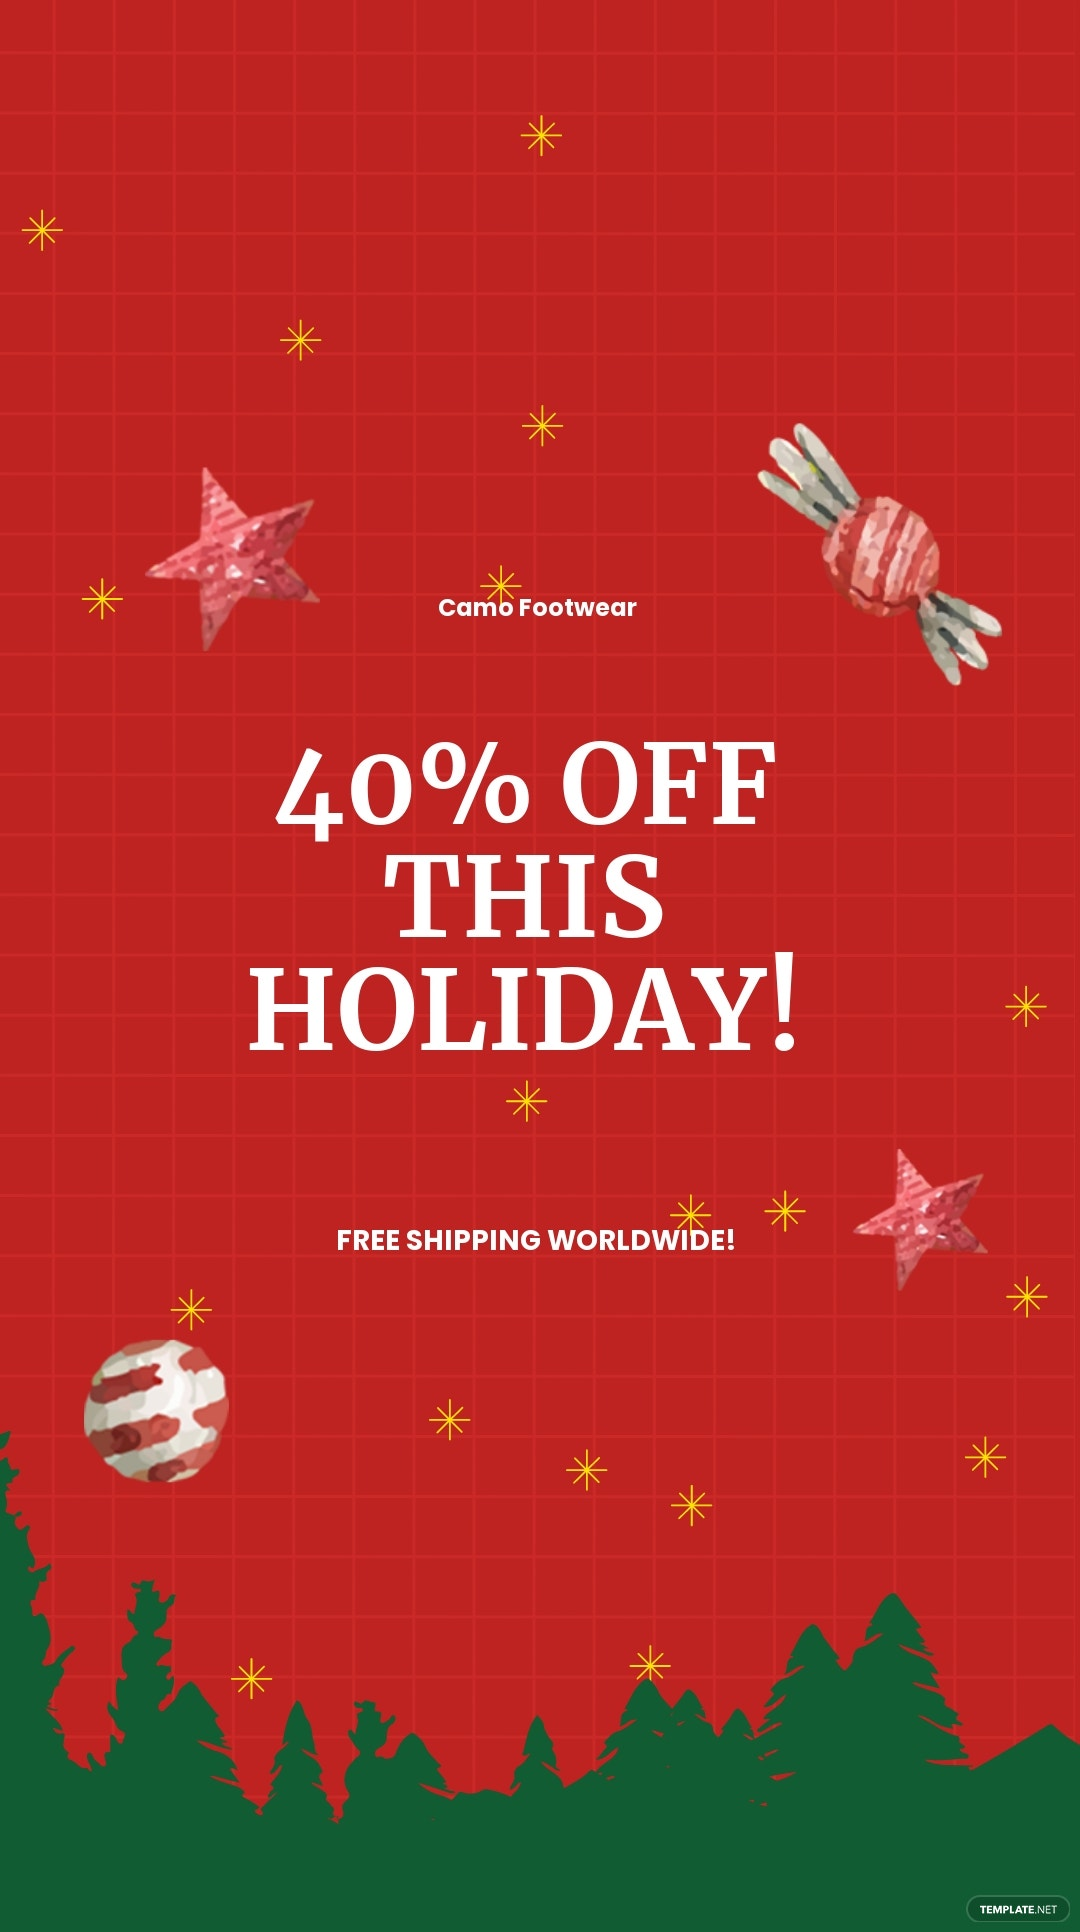 Free Holiday Off Discount Sale Instagram Story Template